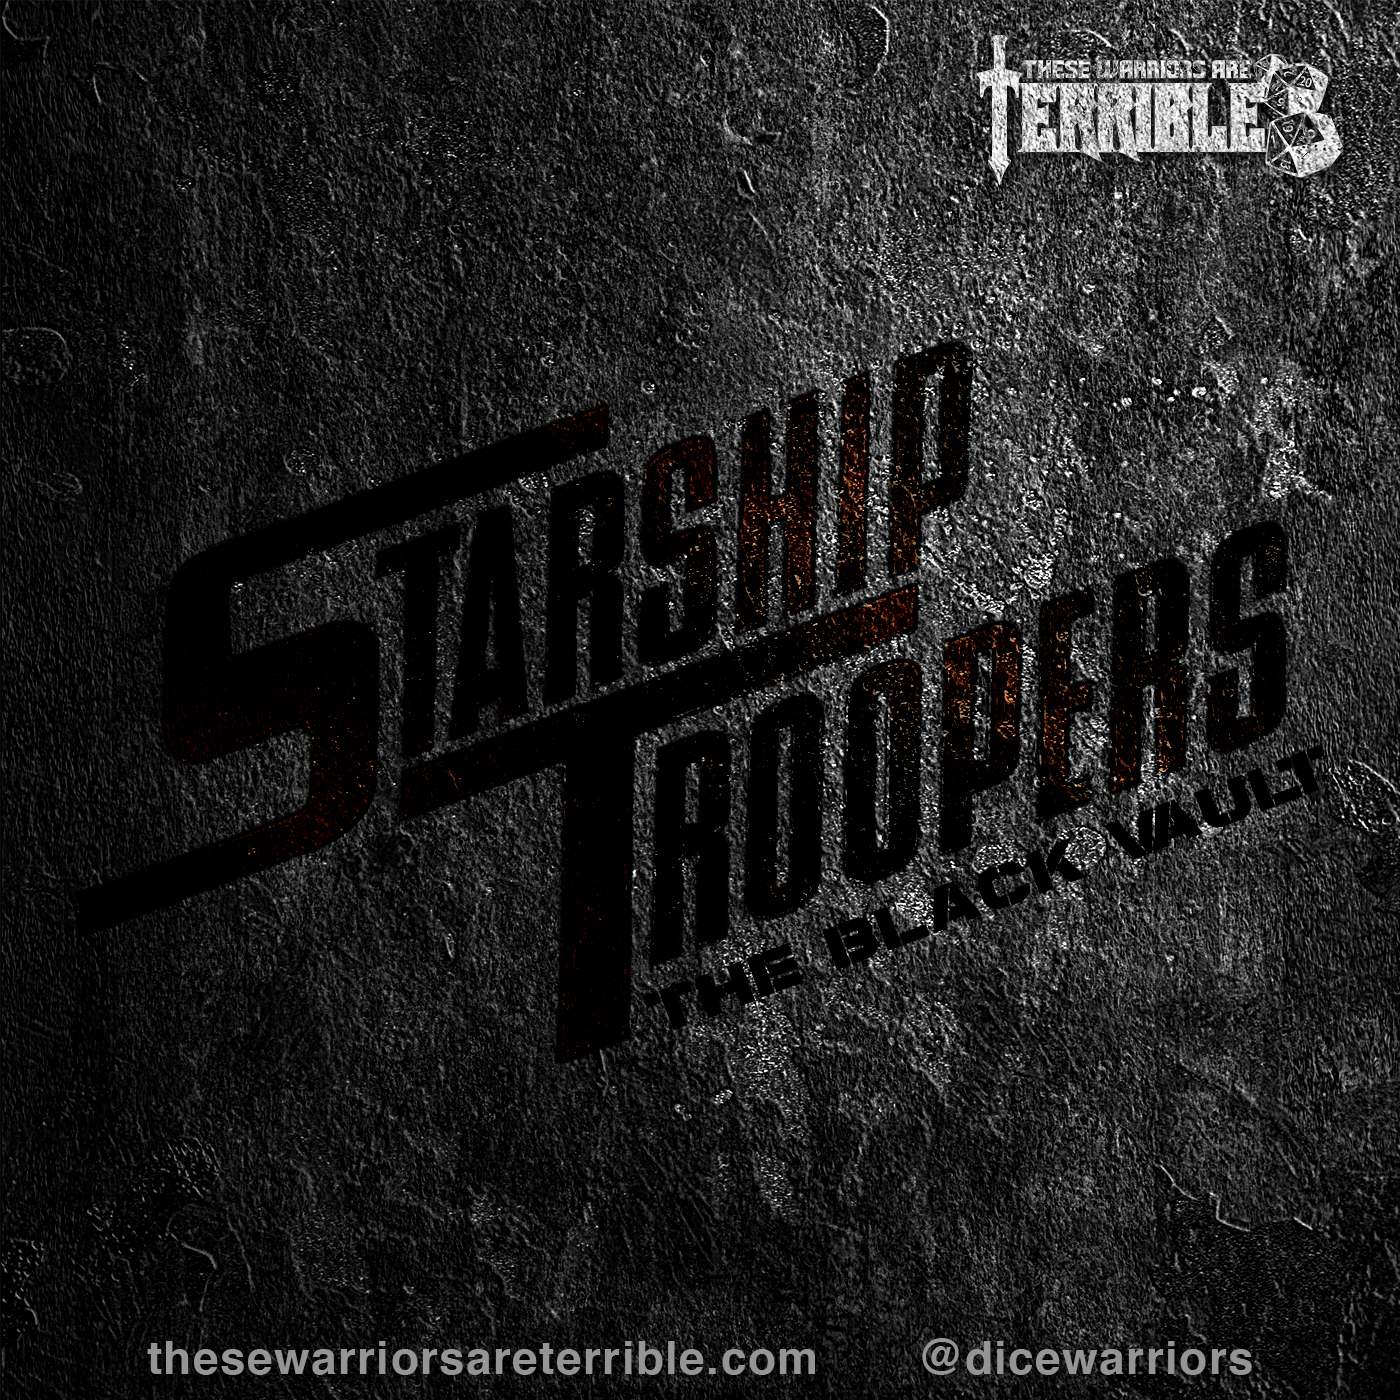 27 - Starship Troopers - The Black Vault.jpg